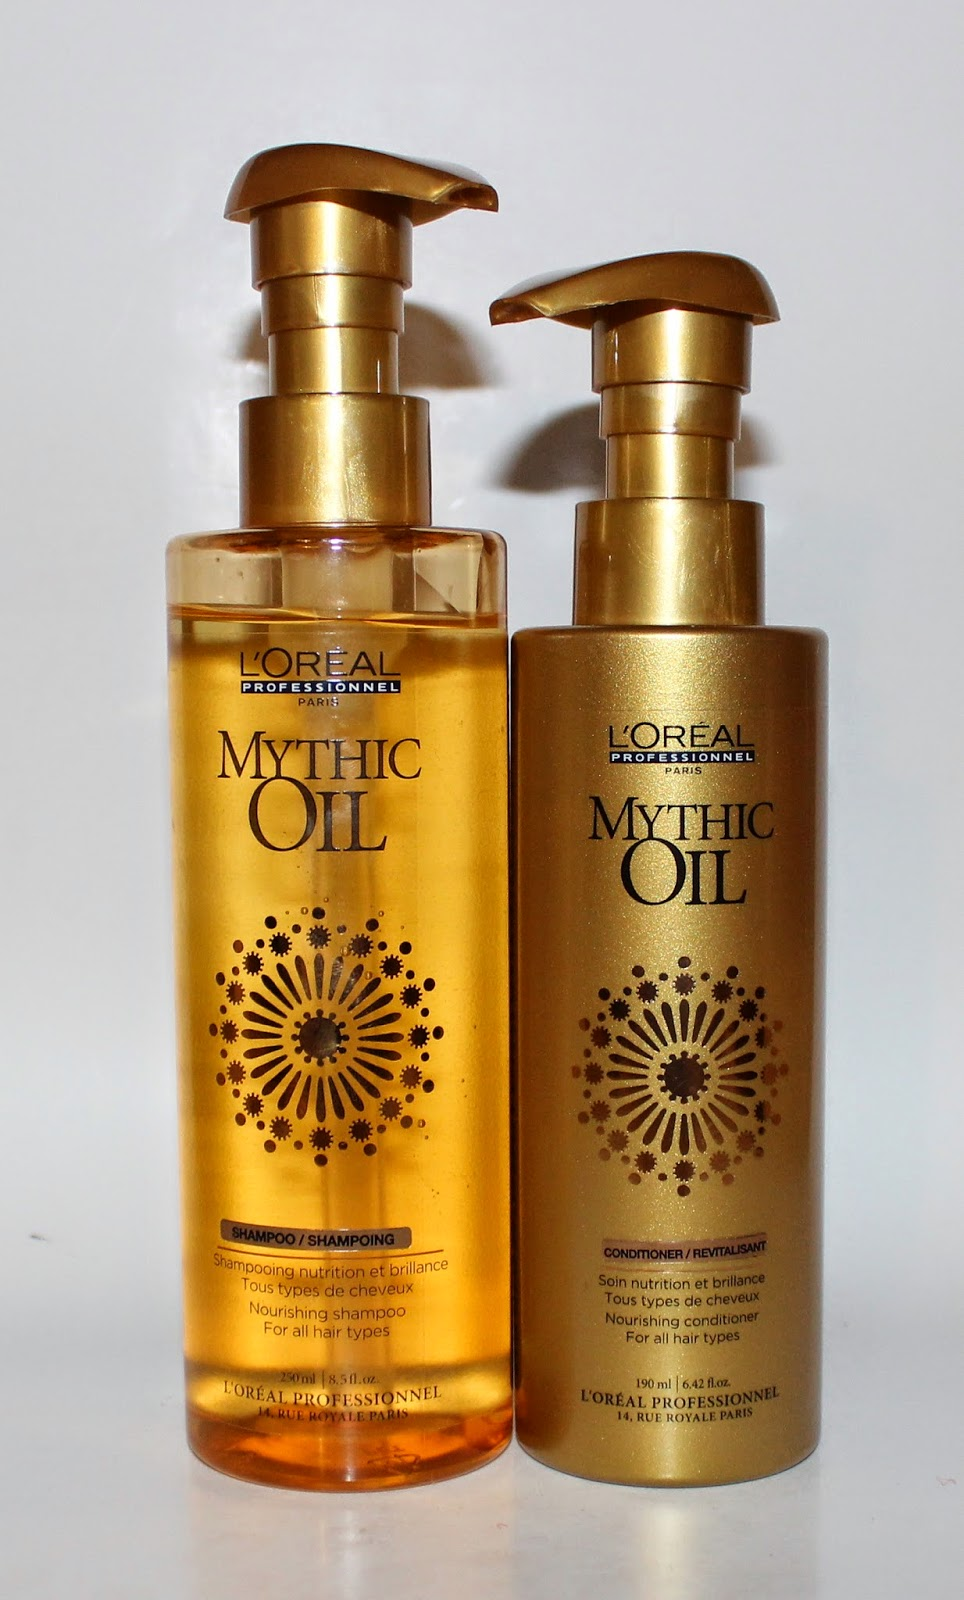 L'Oréal Professional Mythic Oil Nourishing Shampoo & Conditioner